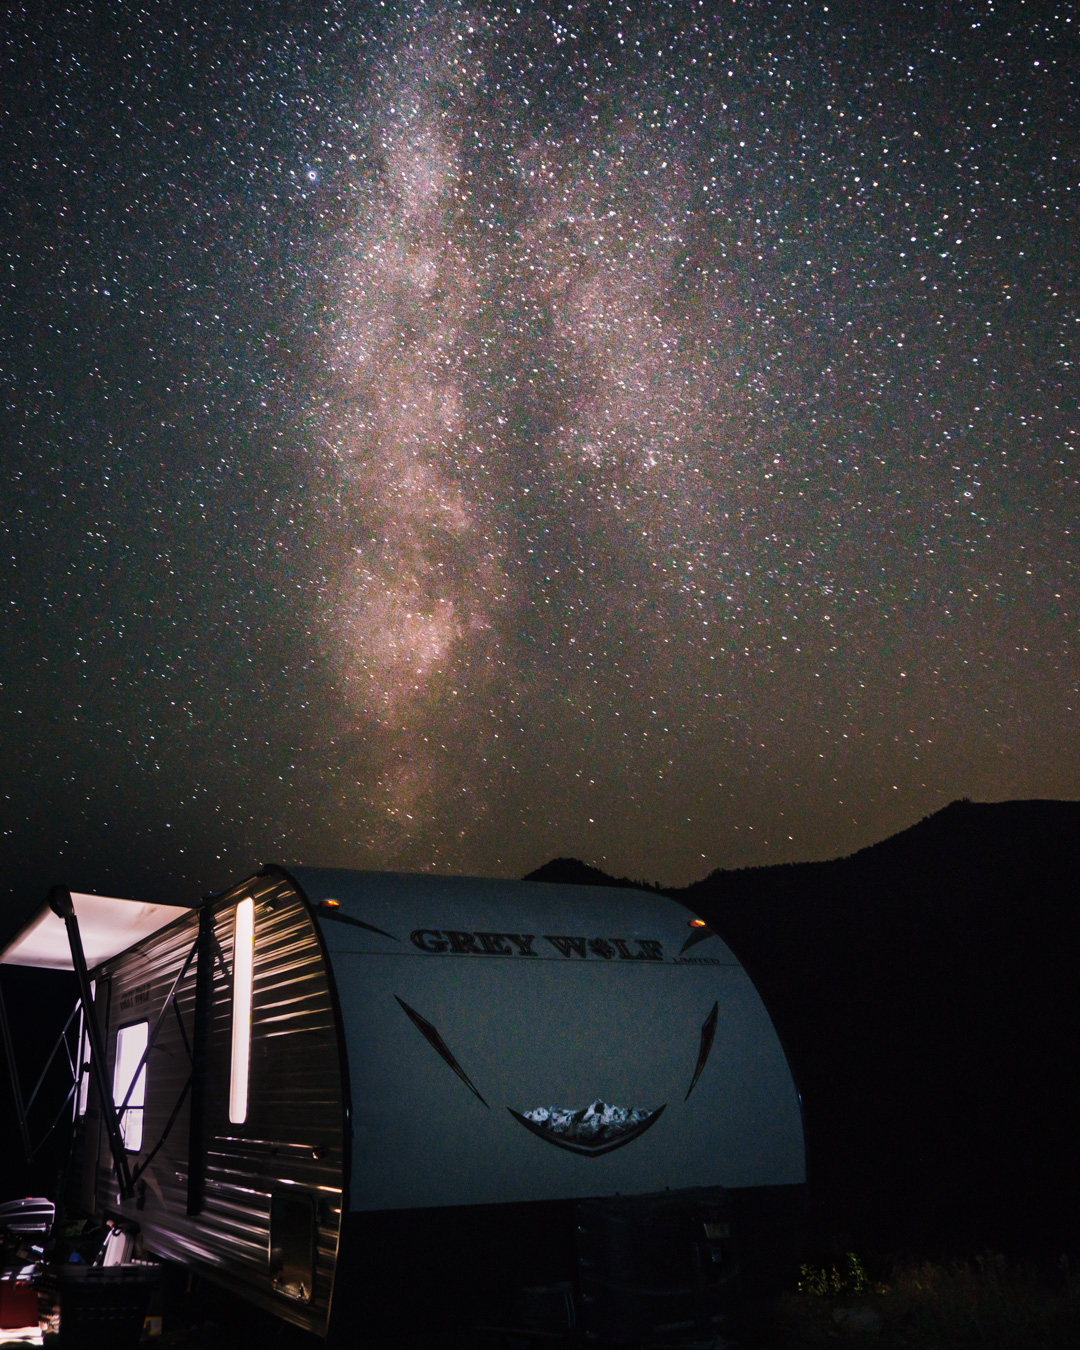 Boondocking at an undeveloped campsite requires the most planning, but can completely immerse you in nature.